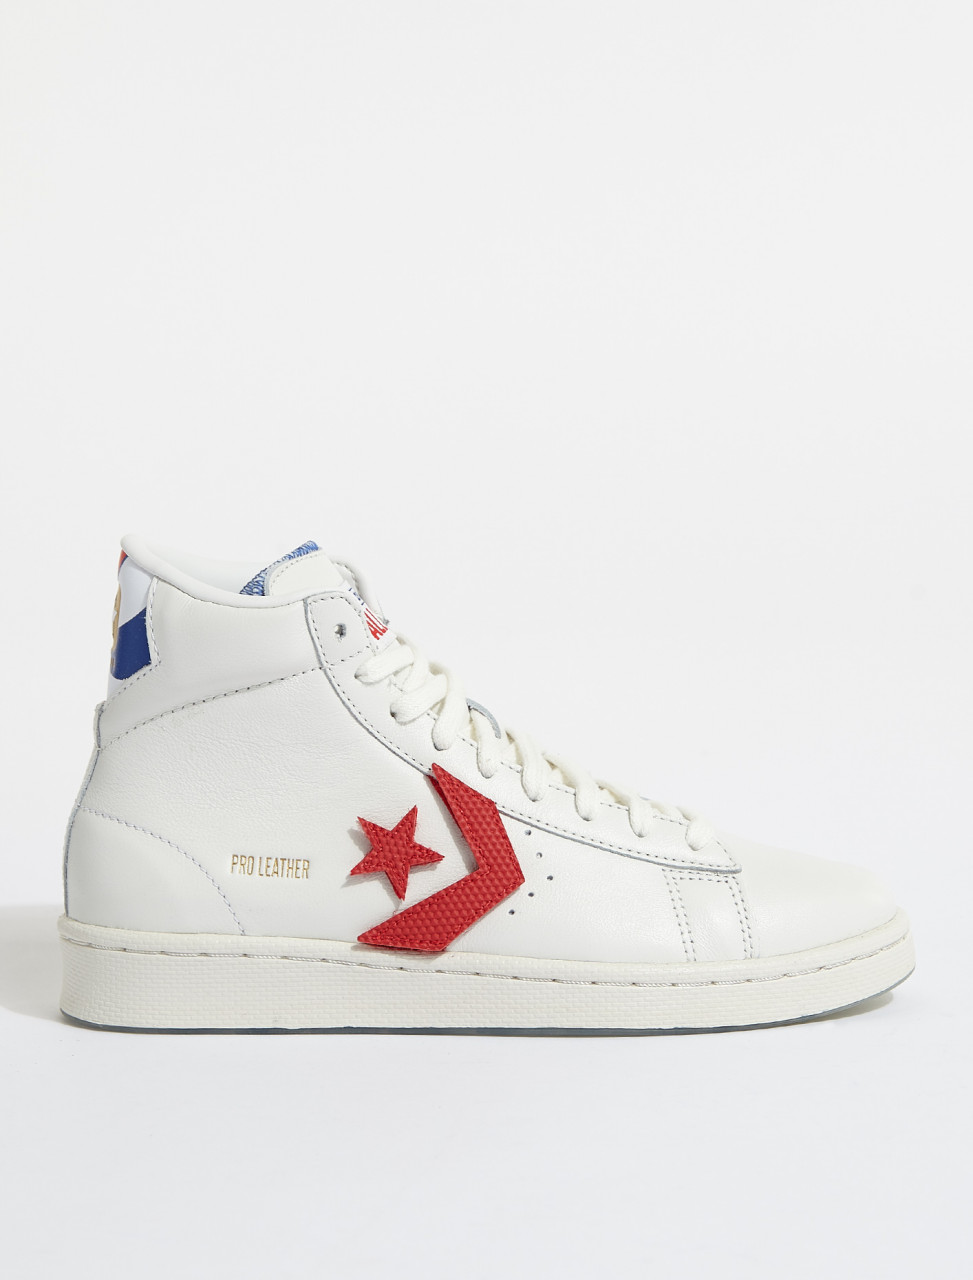 170240C CONVERSE PRO LEATHER HIGH IN VINTAGE WHITE